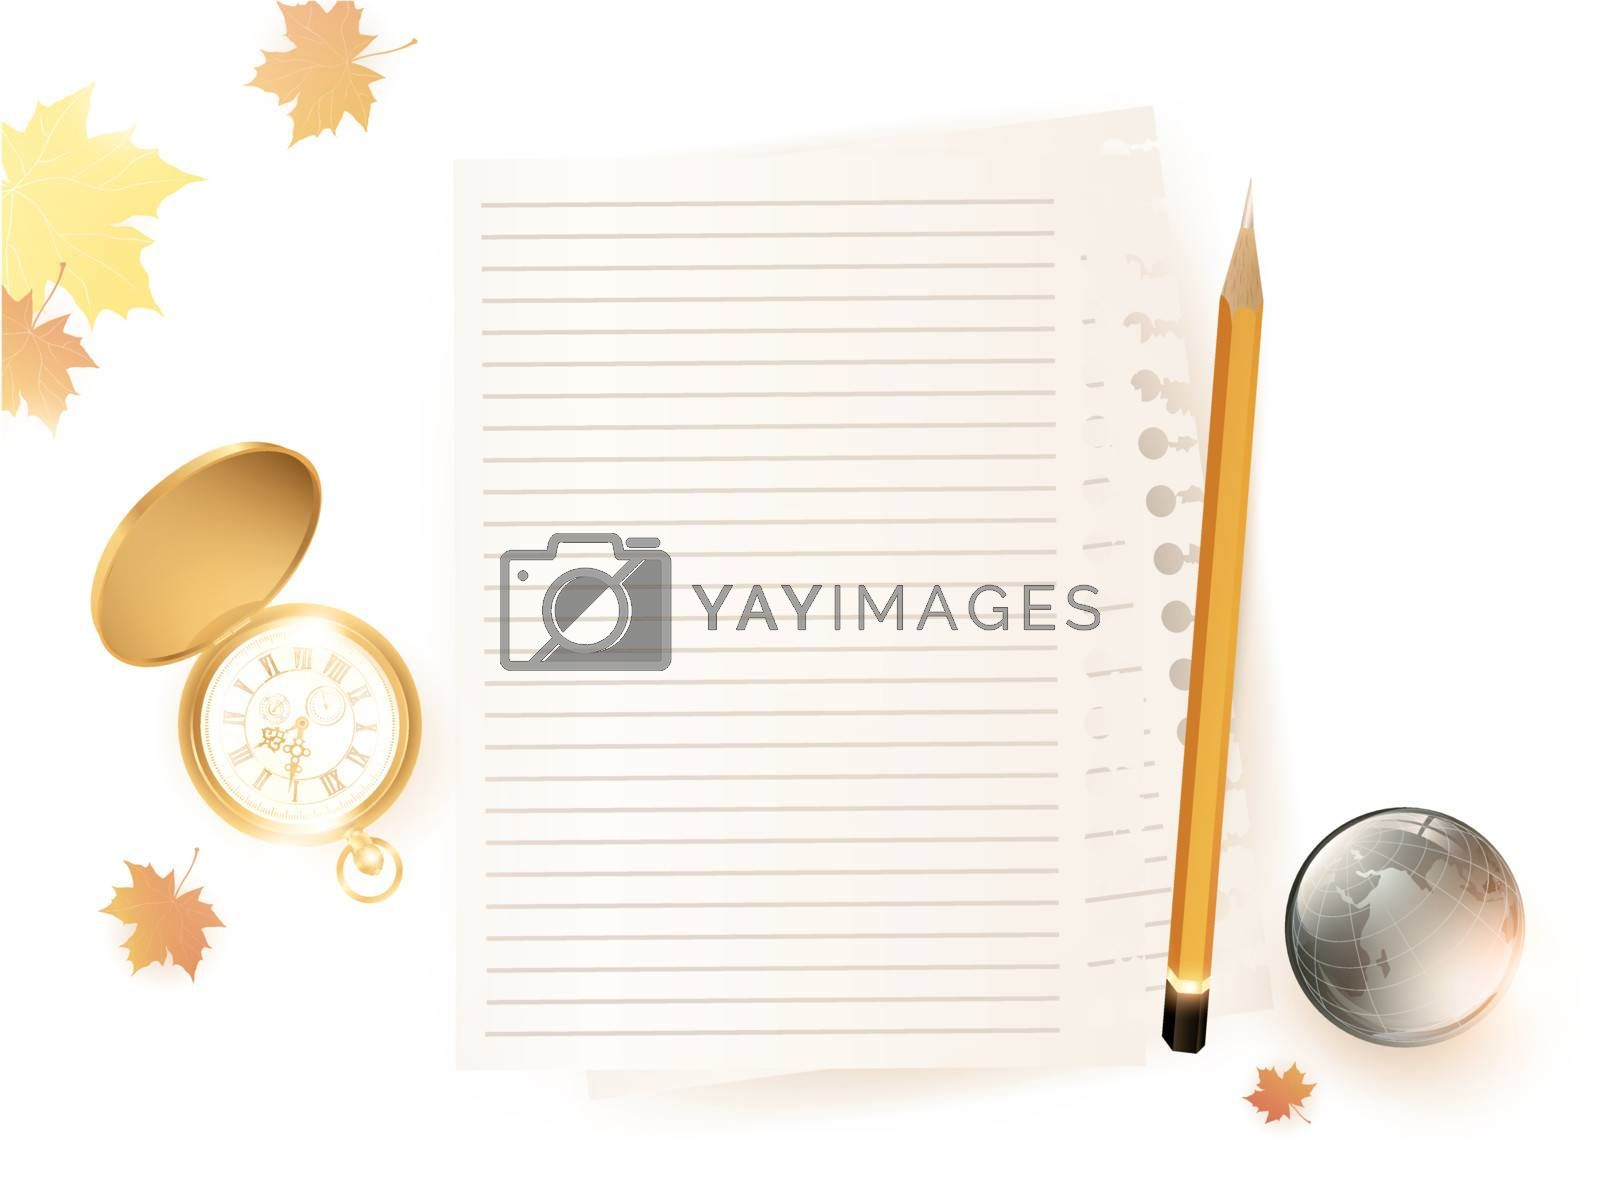 education theme with vintage pocket watch, paper sheets, pencil and glossy earth over white